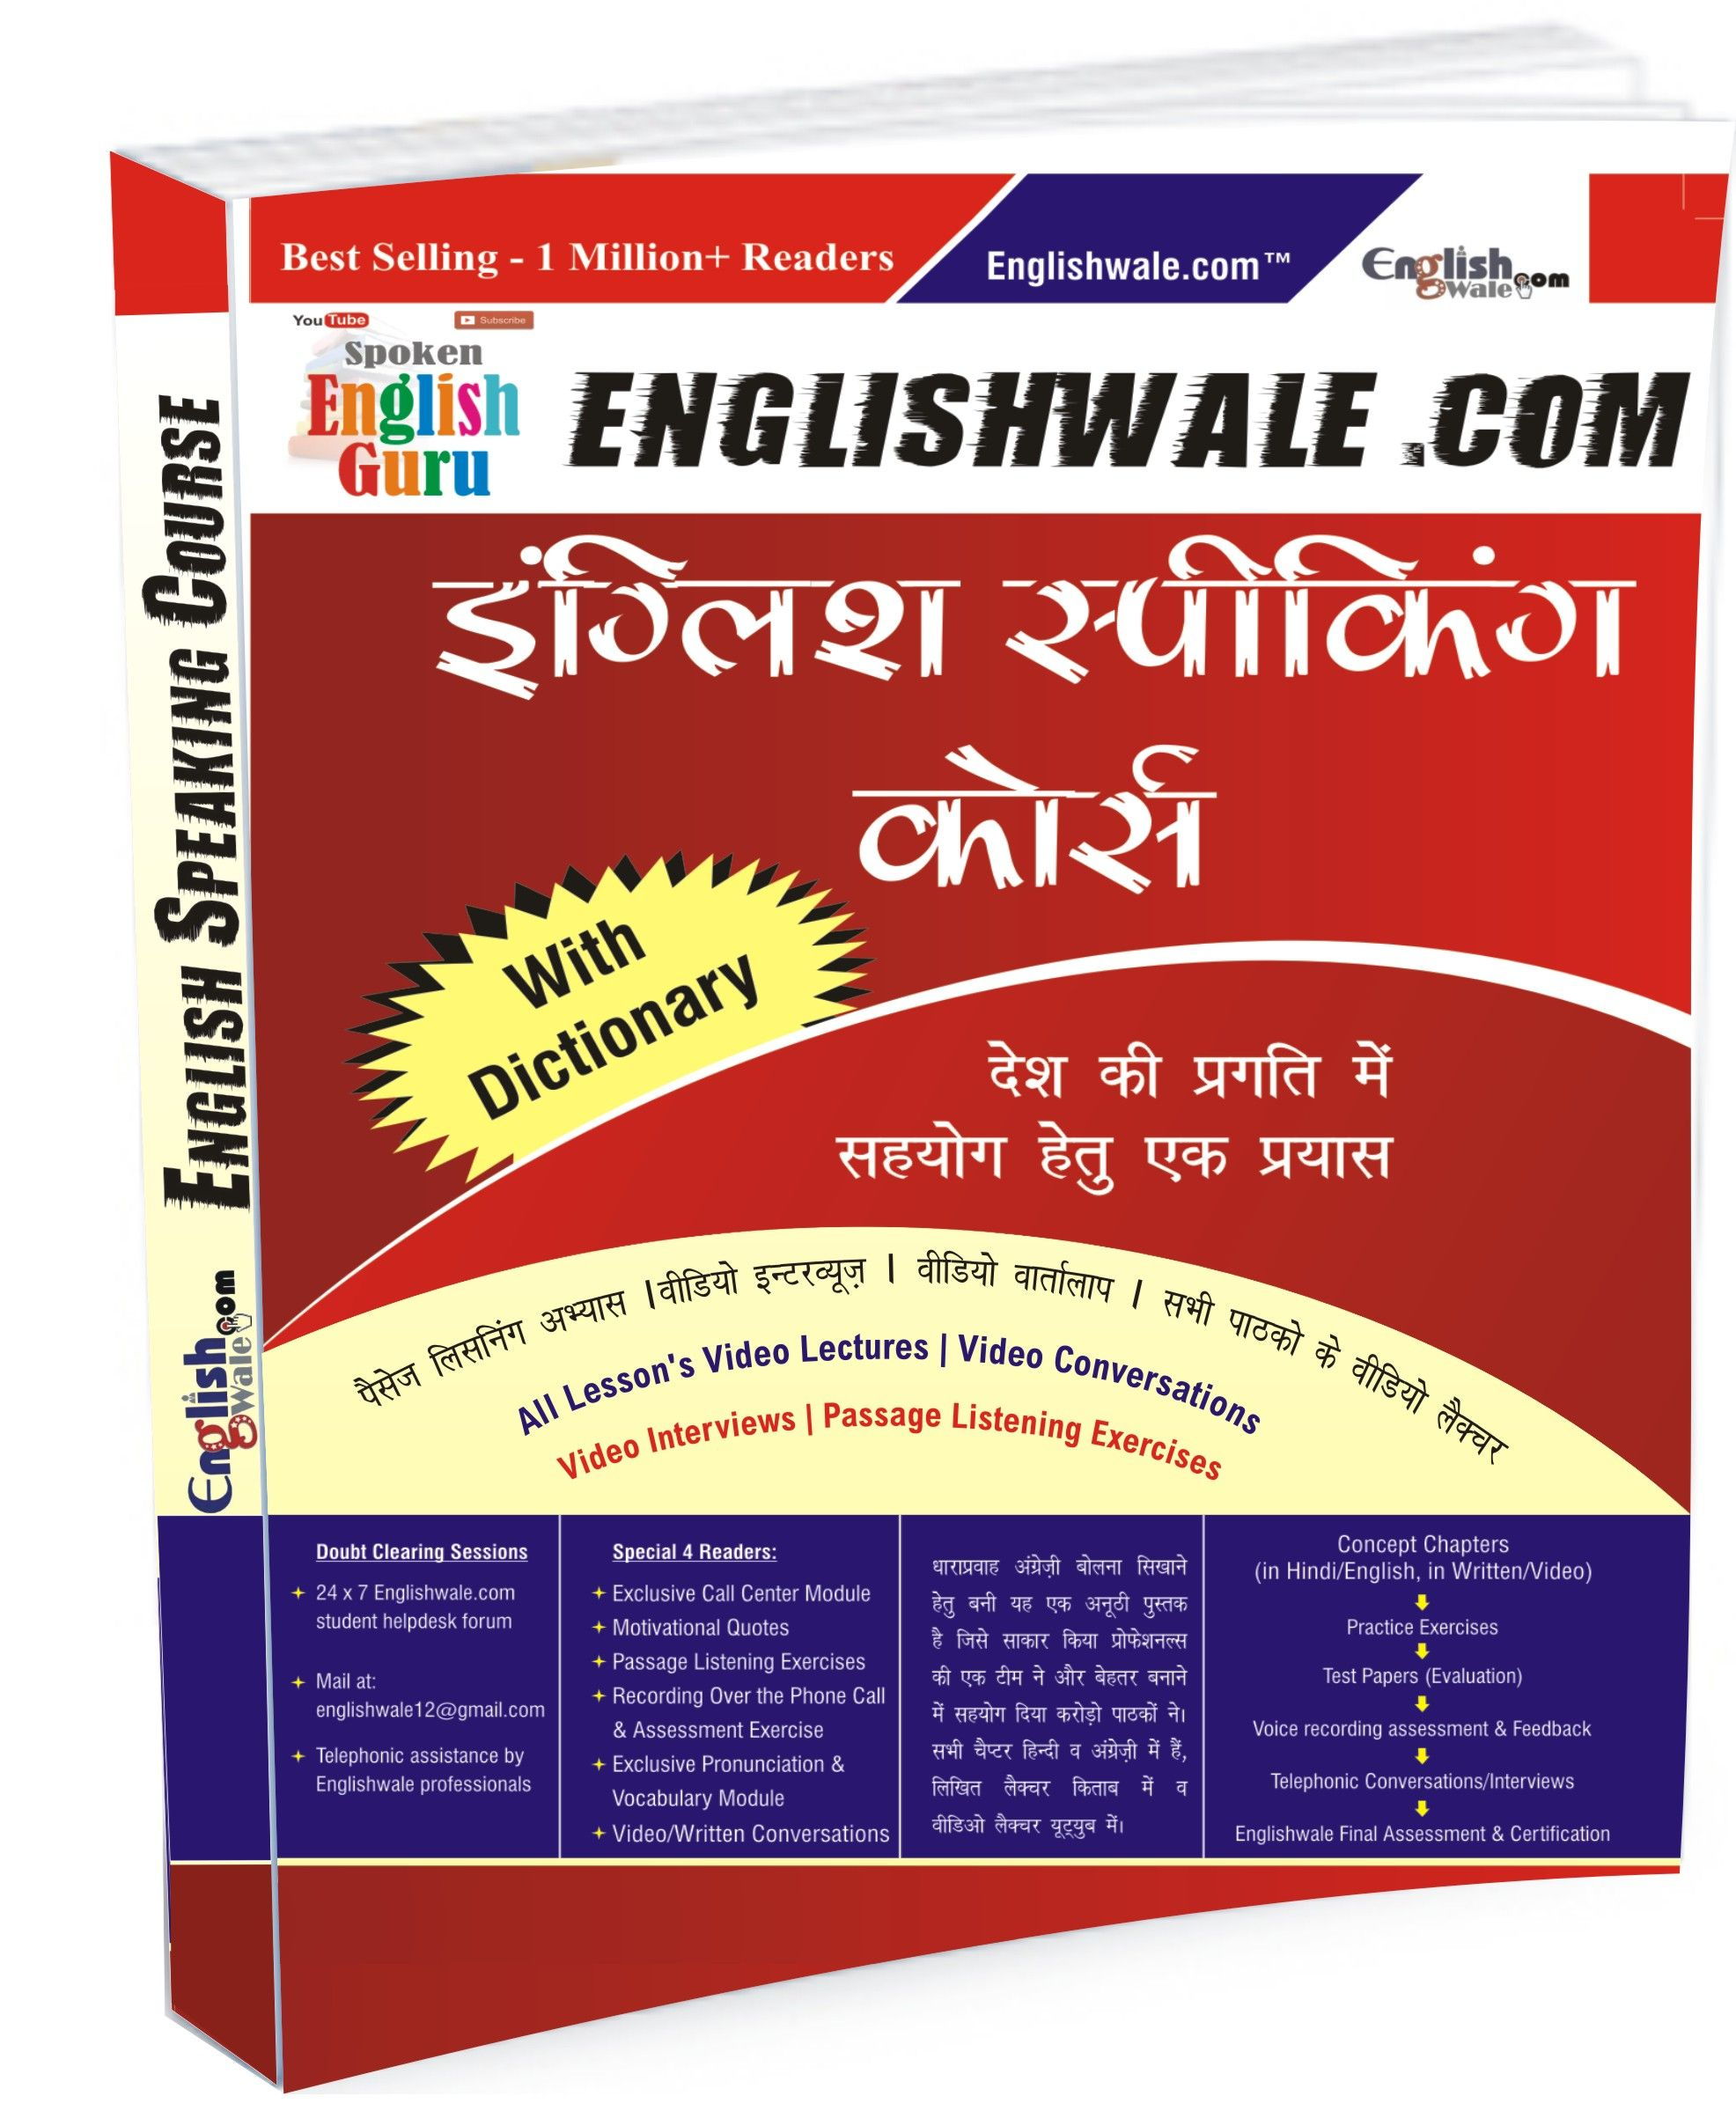 Ebooks For Learning English Learn English Free Ebooks Video